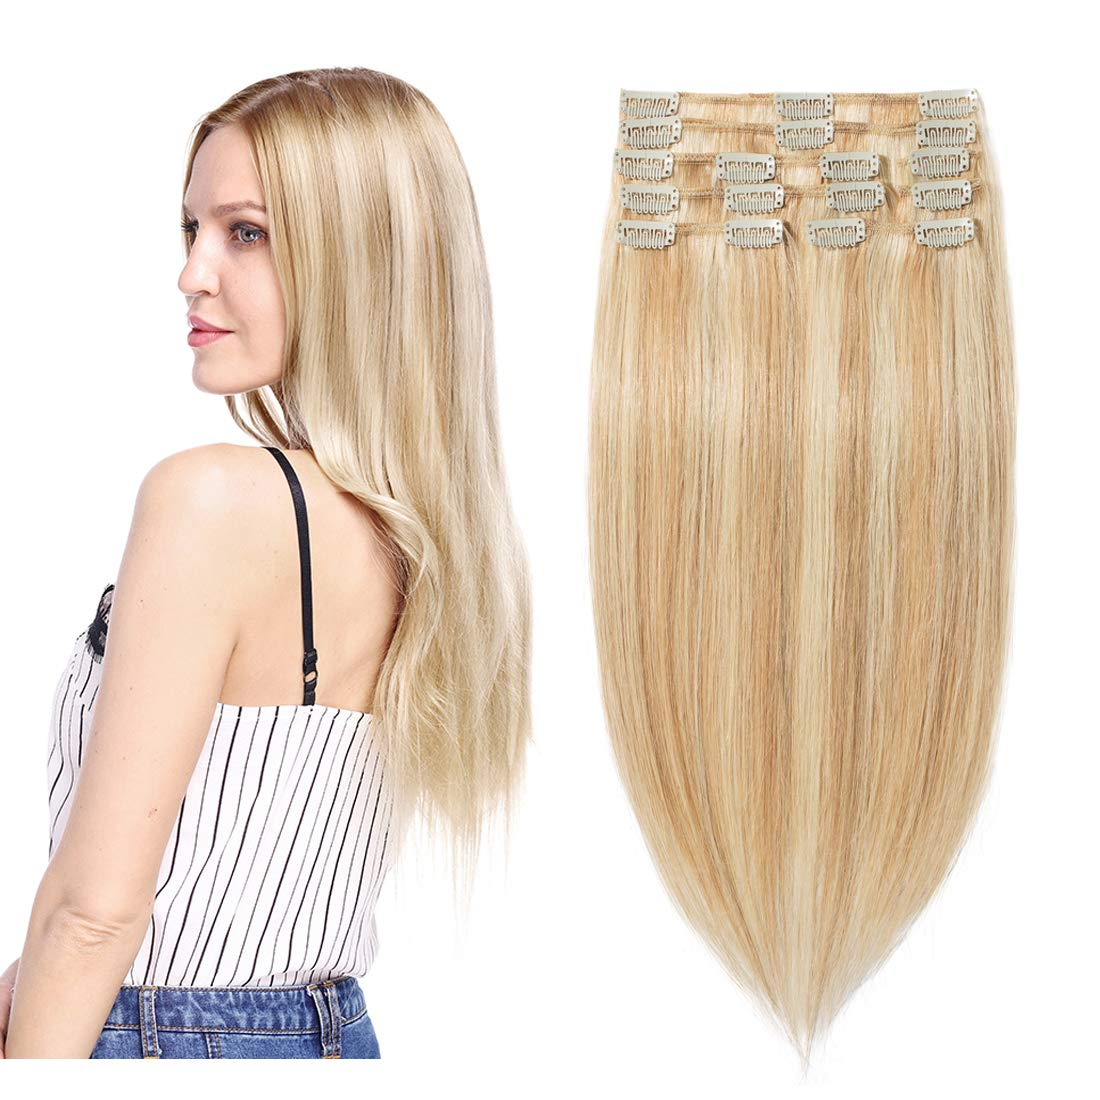 S-noilite Max 42% Large special price !! OFF Clip in Human Hair Extensions C Weft Standard Balayage